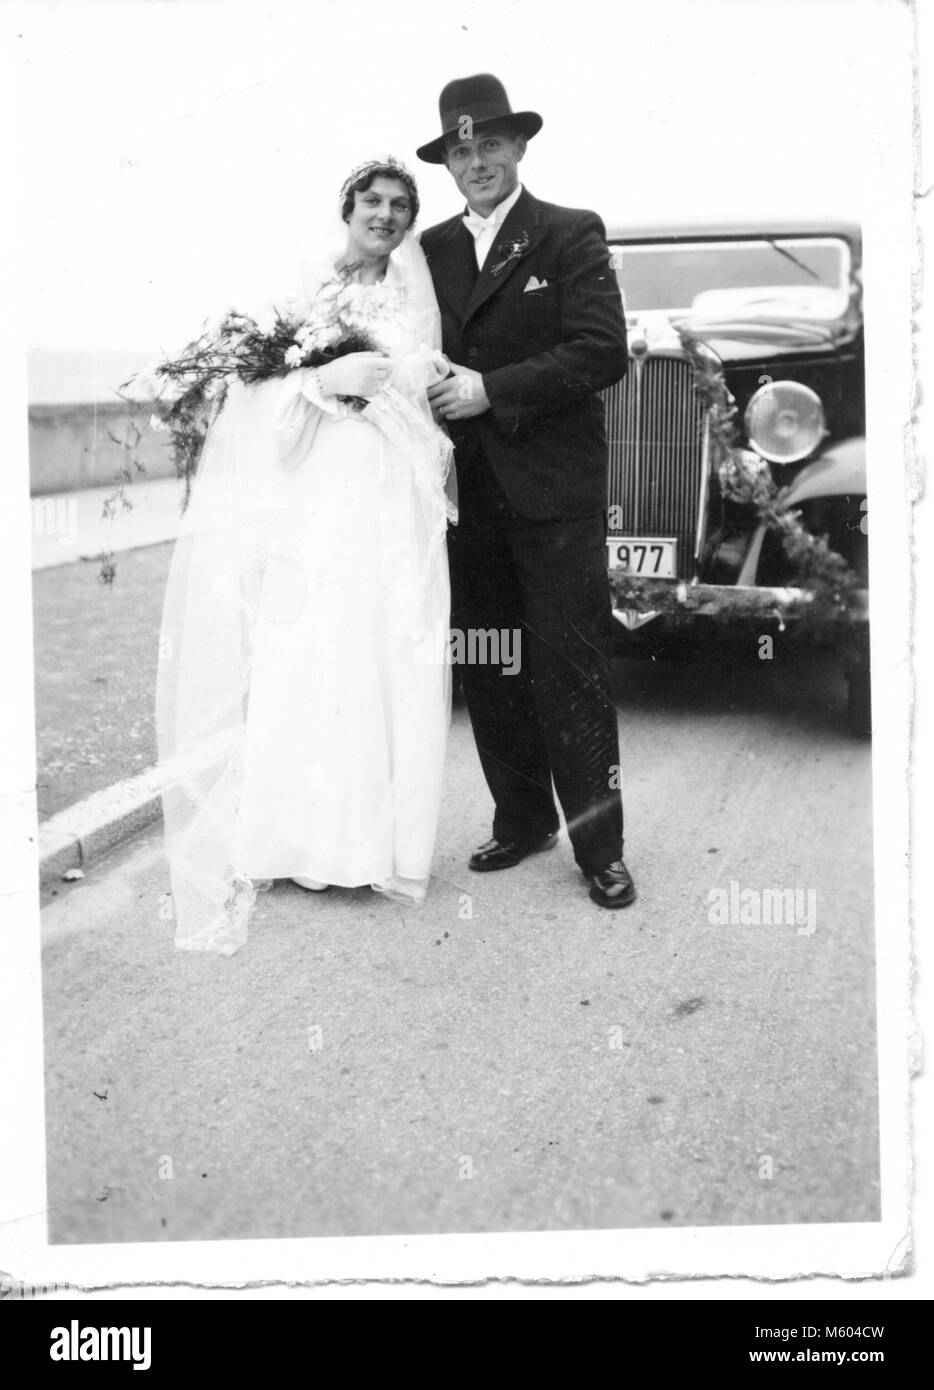 1960s 1970s wedding caucasian couple looking at camera posing in front of an ancient car. Black and white shot. - Stock Image